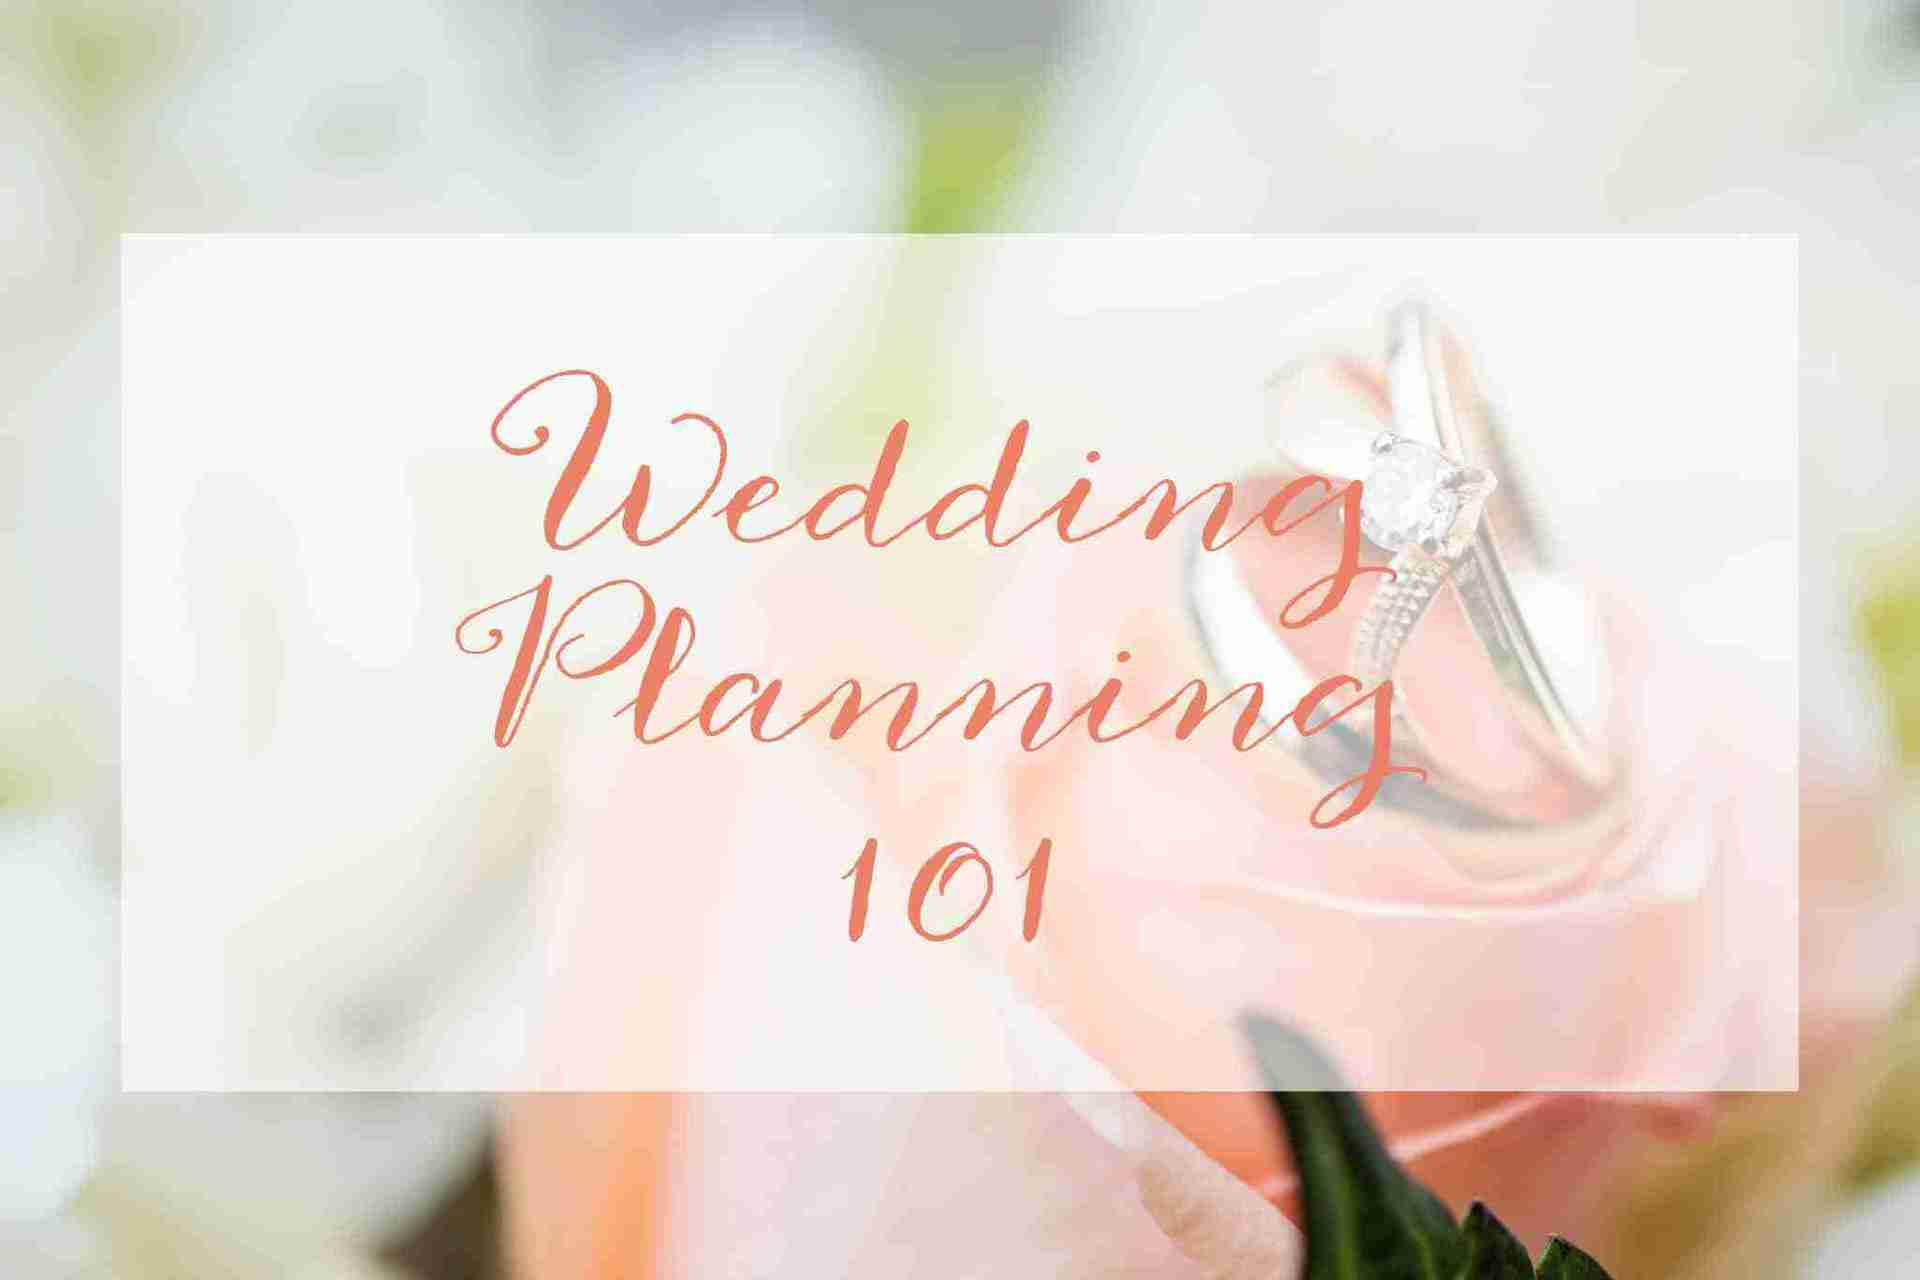 Savannah Wedding Planning 101 for future brides